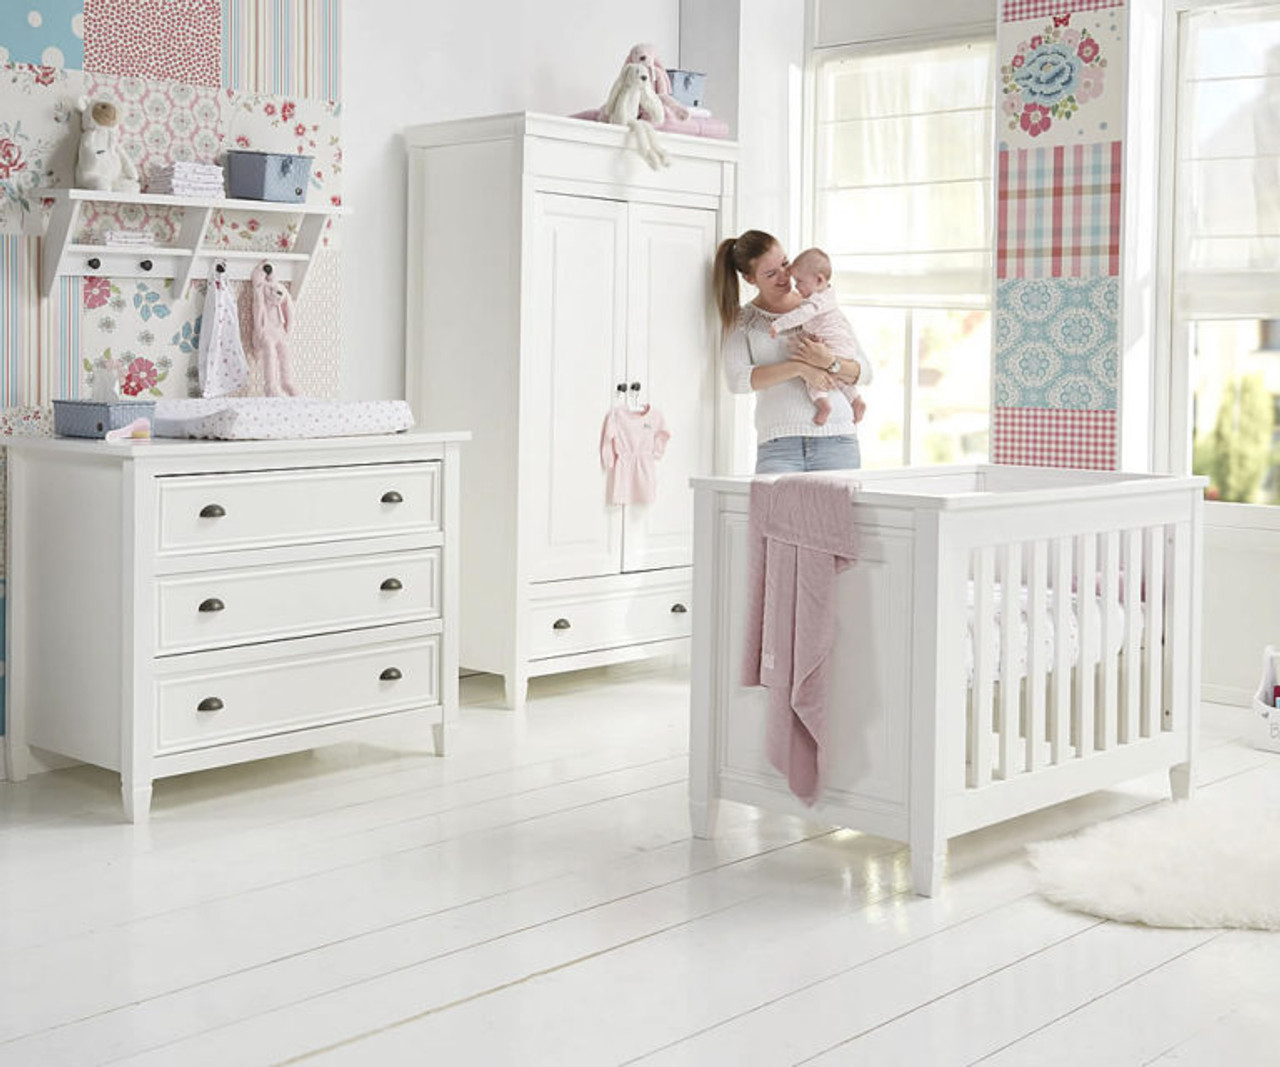 Baby Style Marbella 3 Pieces Nursery Furniture Set